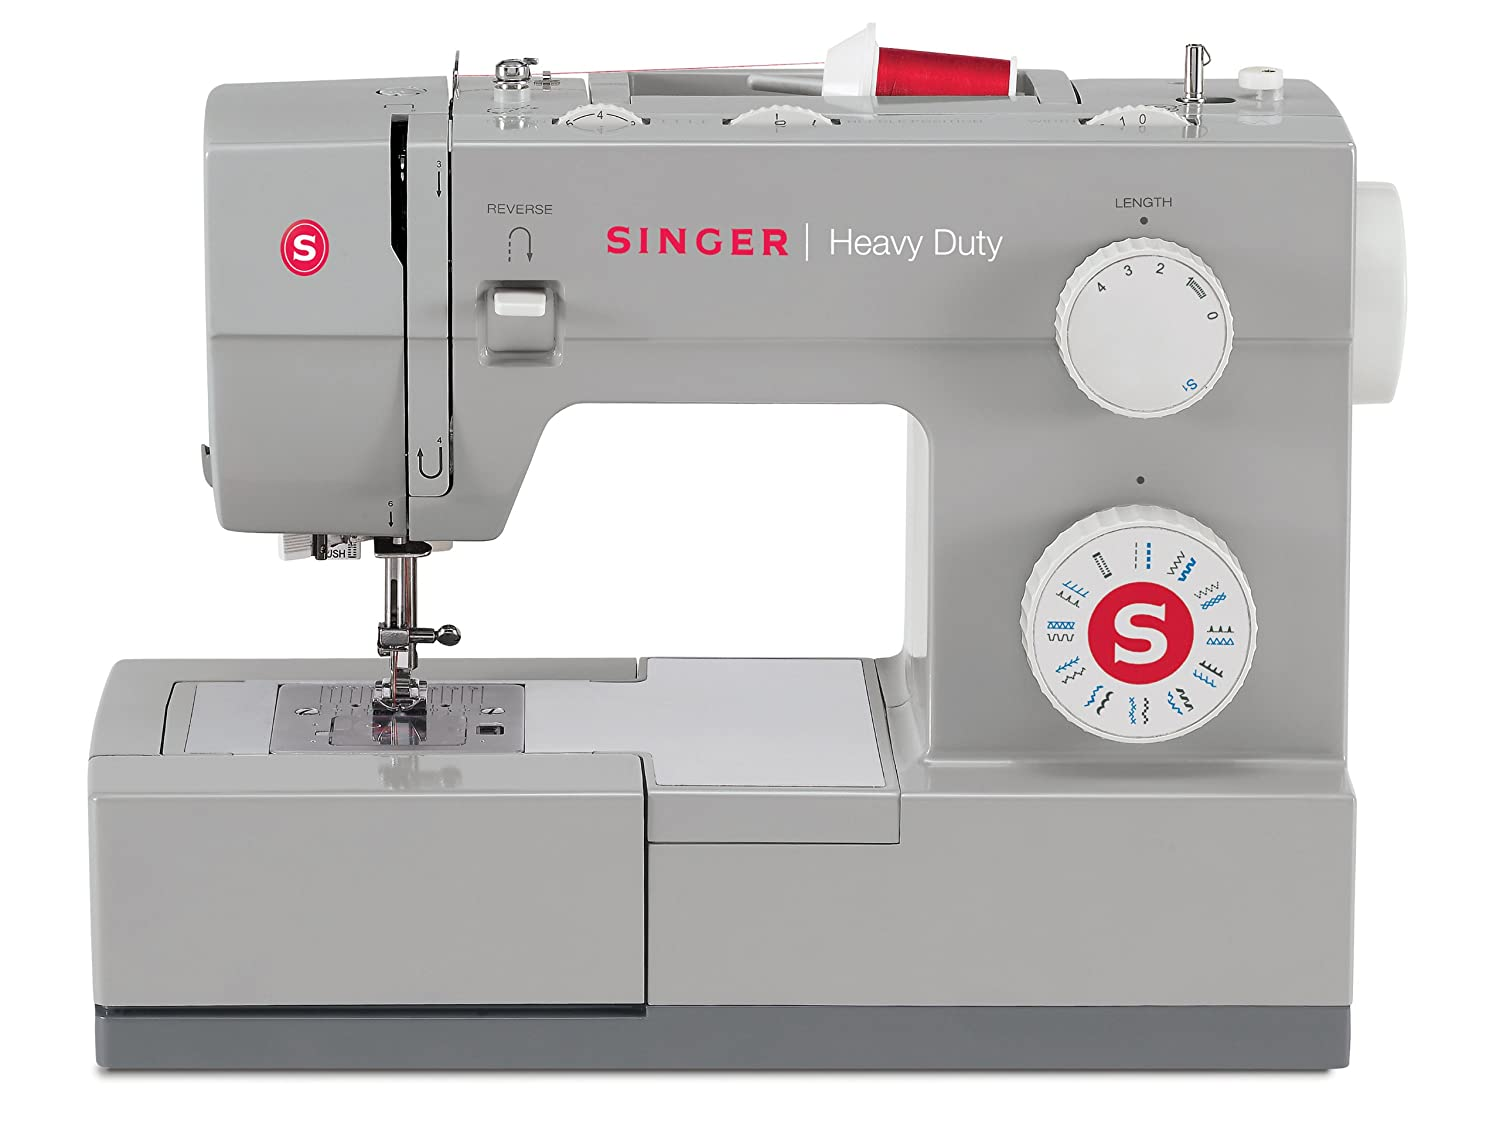 SINGER 4423 Heavy Duty Extra-High Speed Sewing Machine